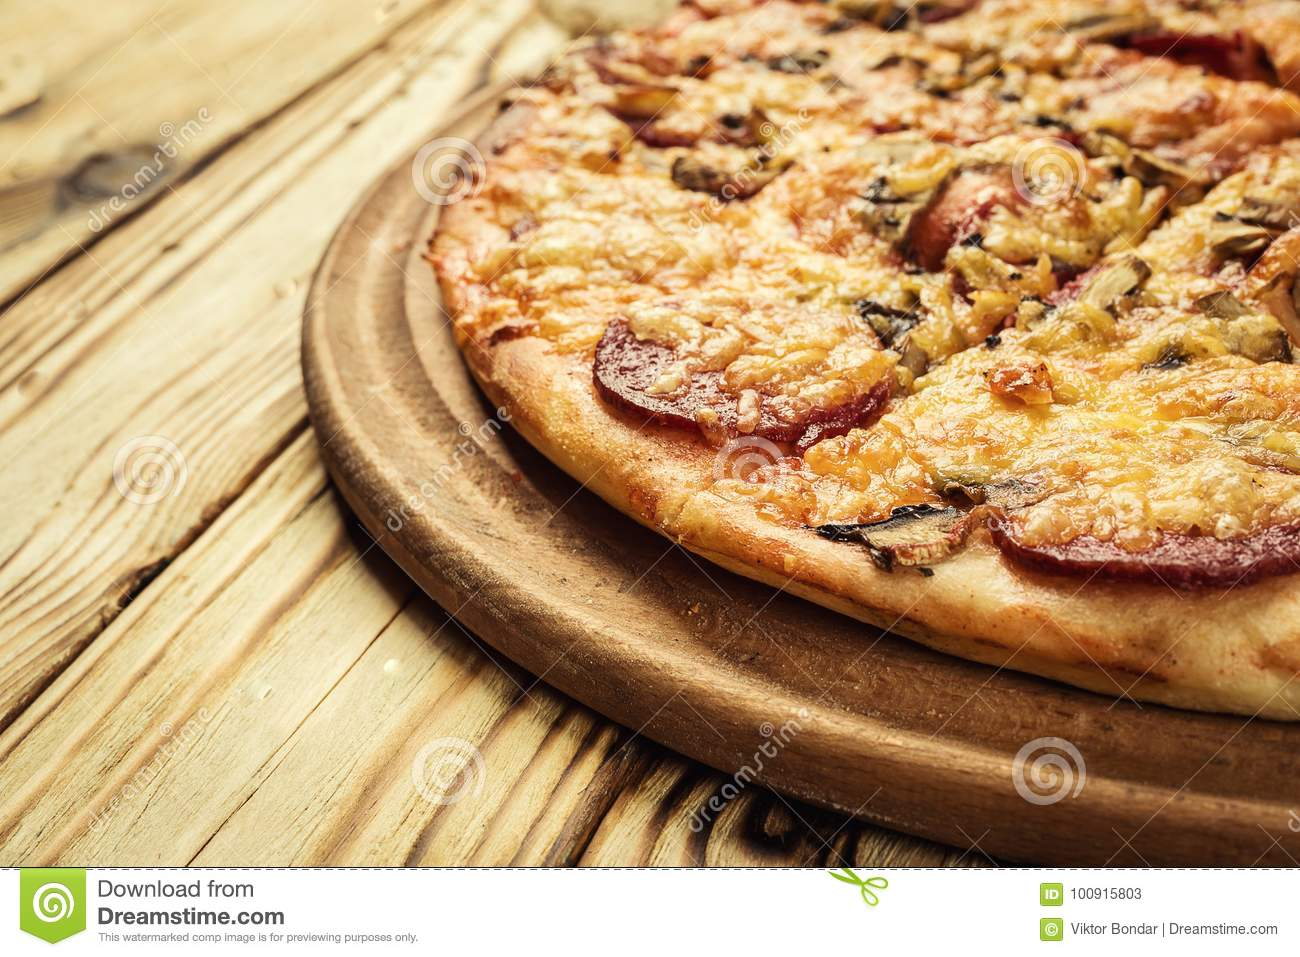 Hot pizza slice with melting cheese on a rustic wooden table.pepperoni pizza,Hot Homemade Pepperoni Pizza Ready to Eat,Supreme Pi